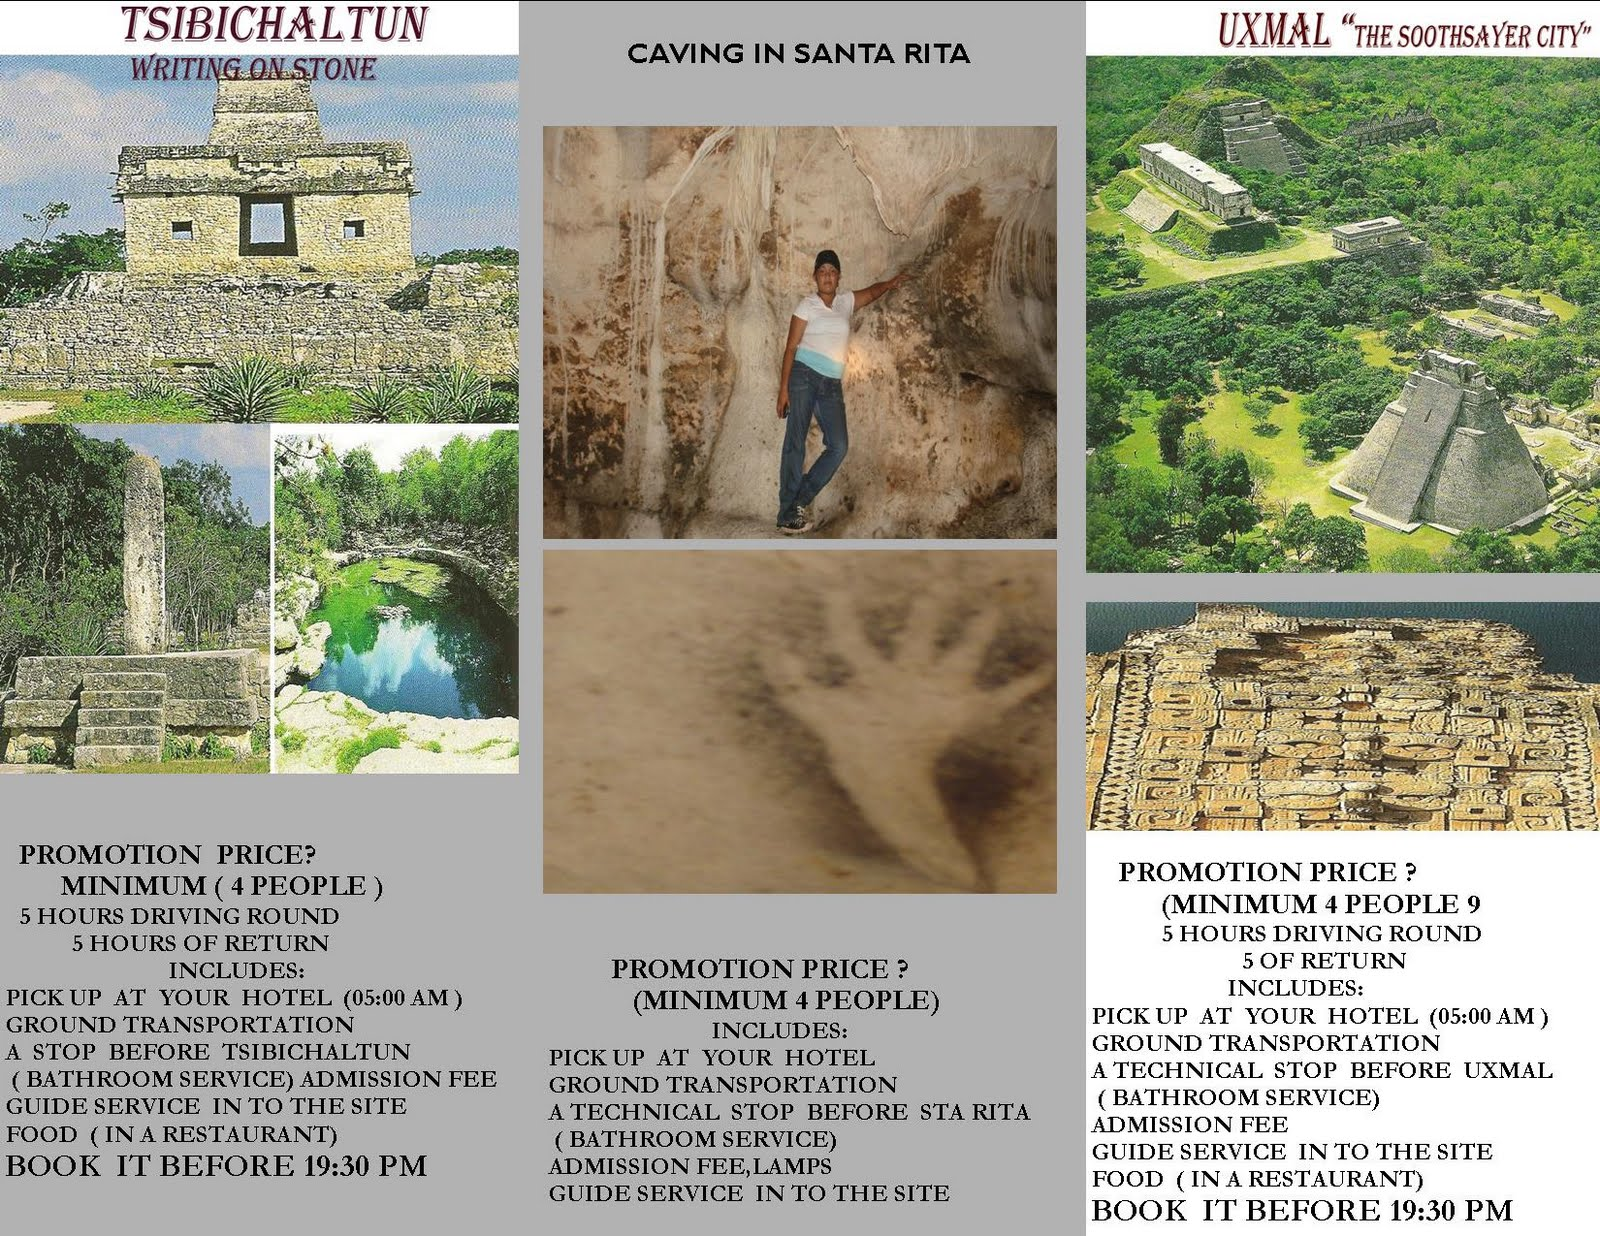 TRAVEL IN ALL PARTS OF THE YUCATAN PENINSULA COMP